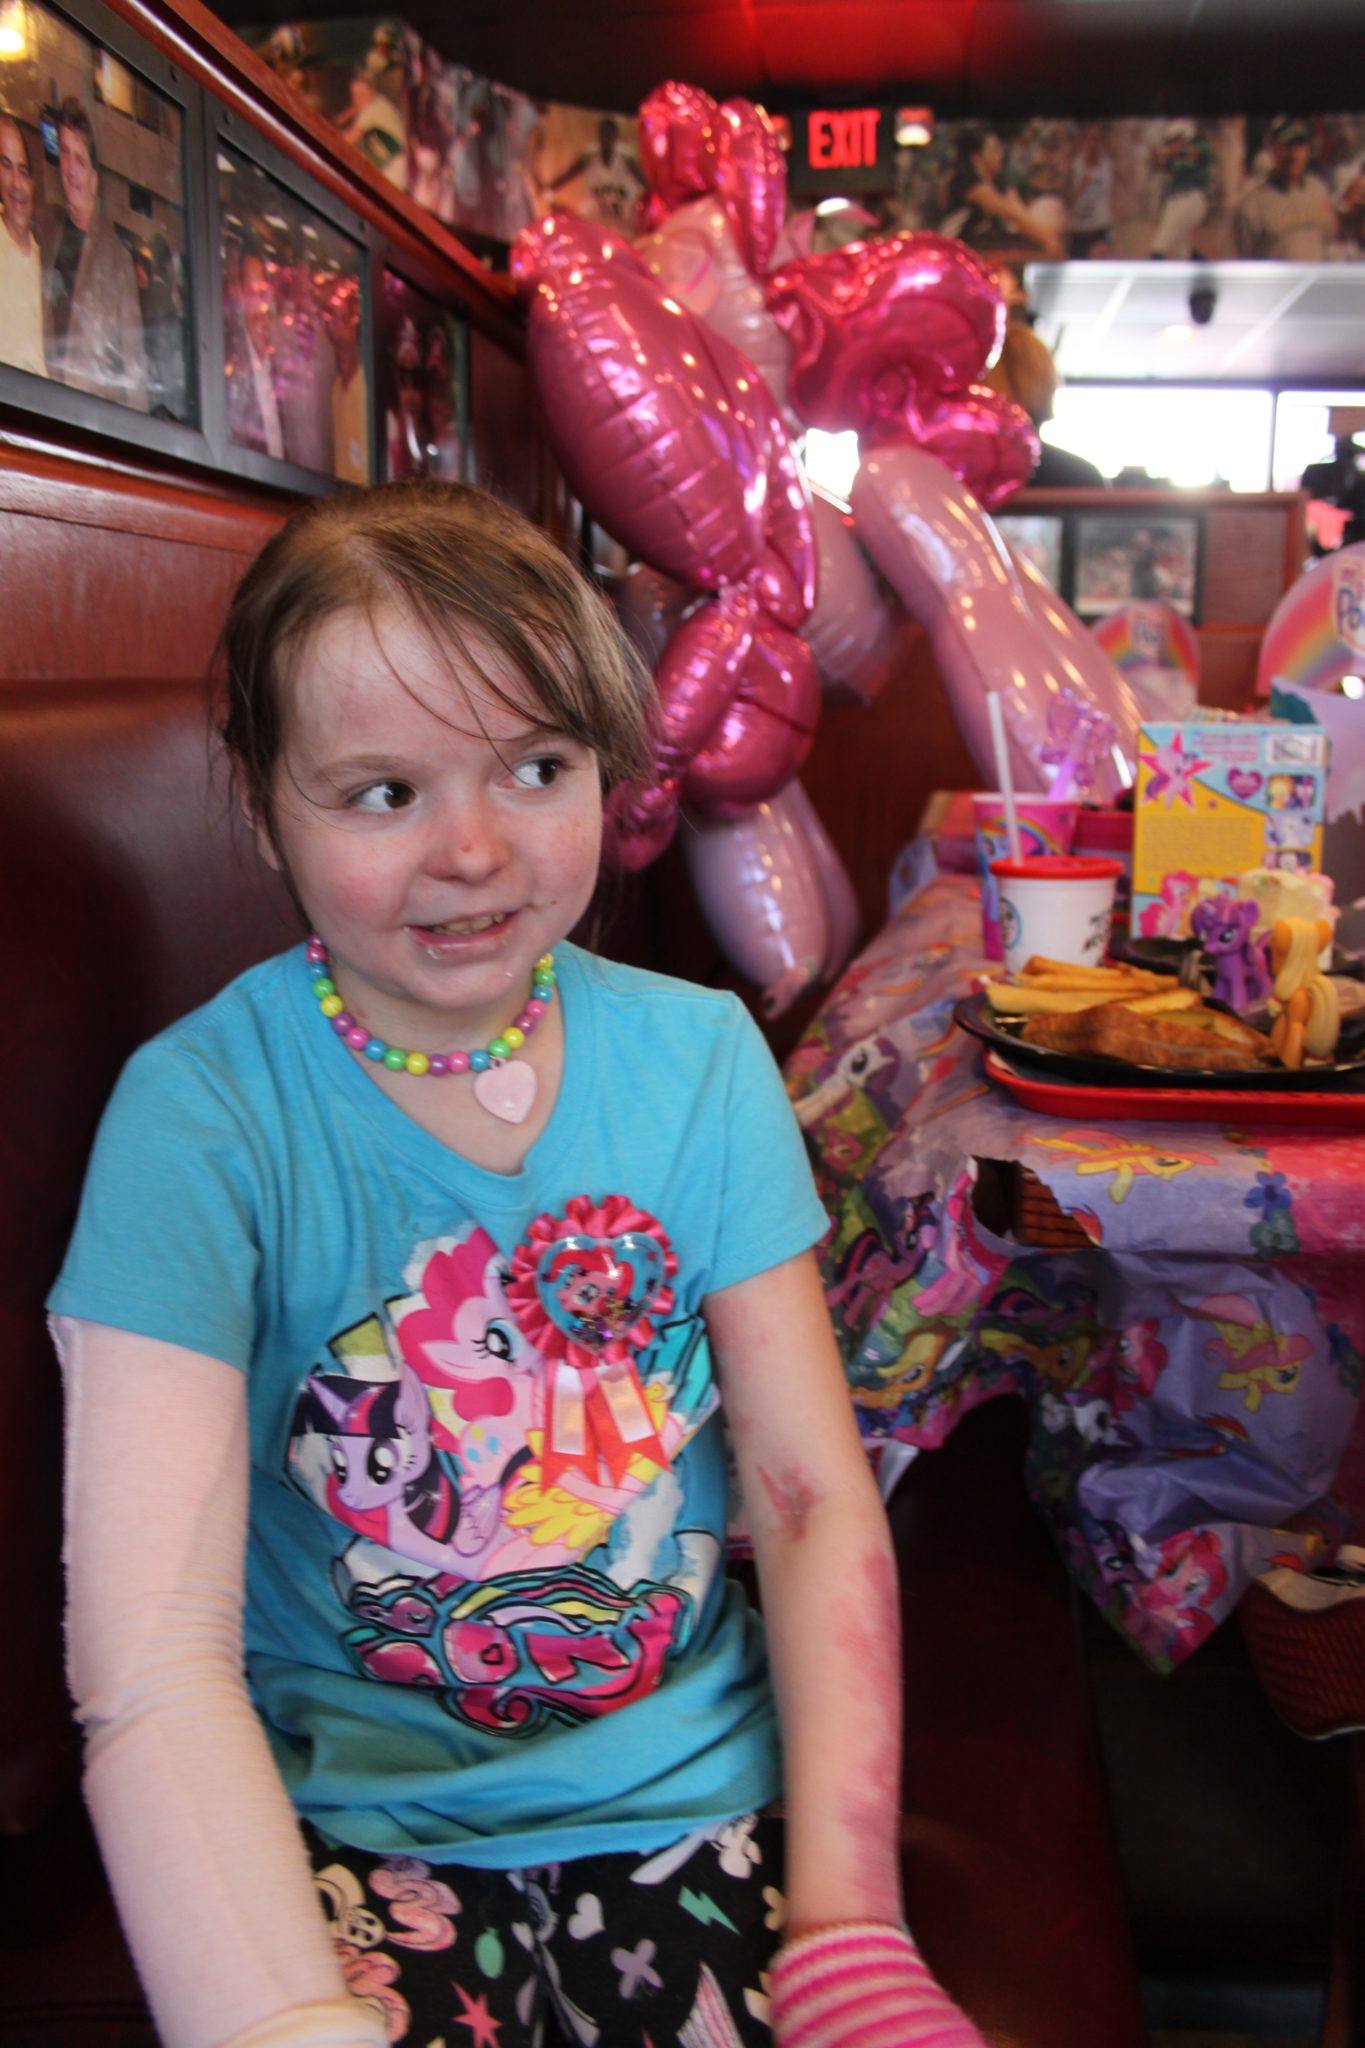 Nine-year-old Charlotte of Irondale found out today that she will be going to Disney World courtesy of Make-a-Wish Alabama. Journal photo by Kaitlin Candelaria